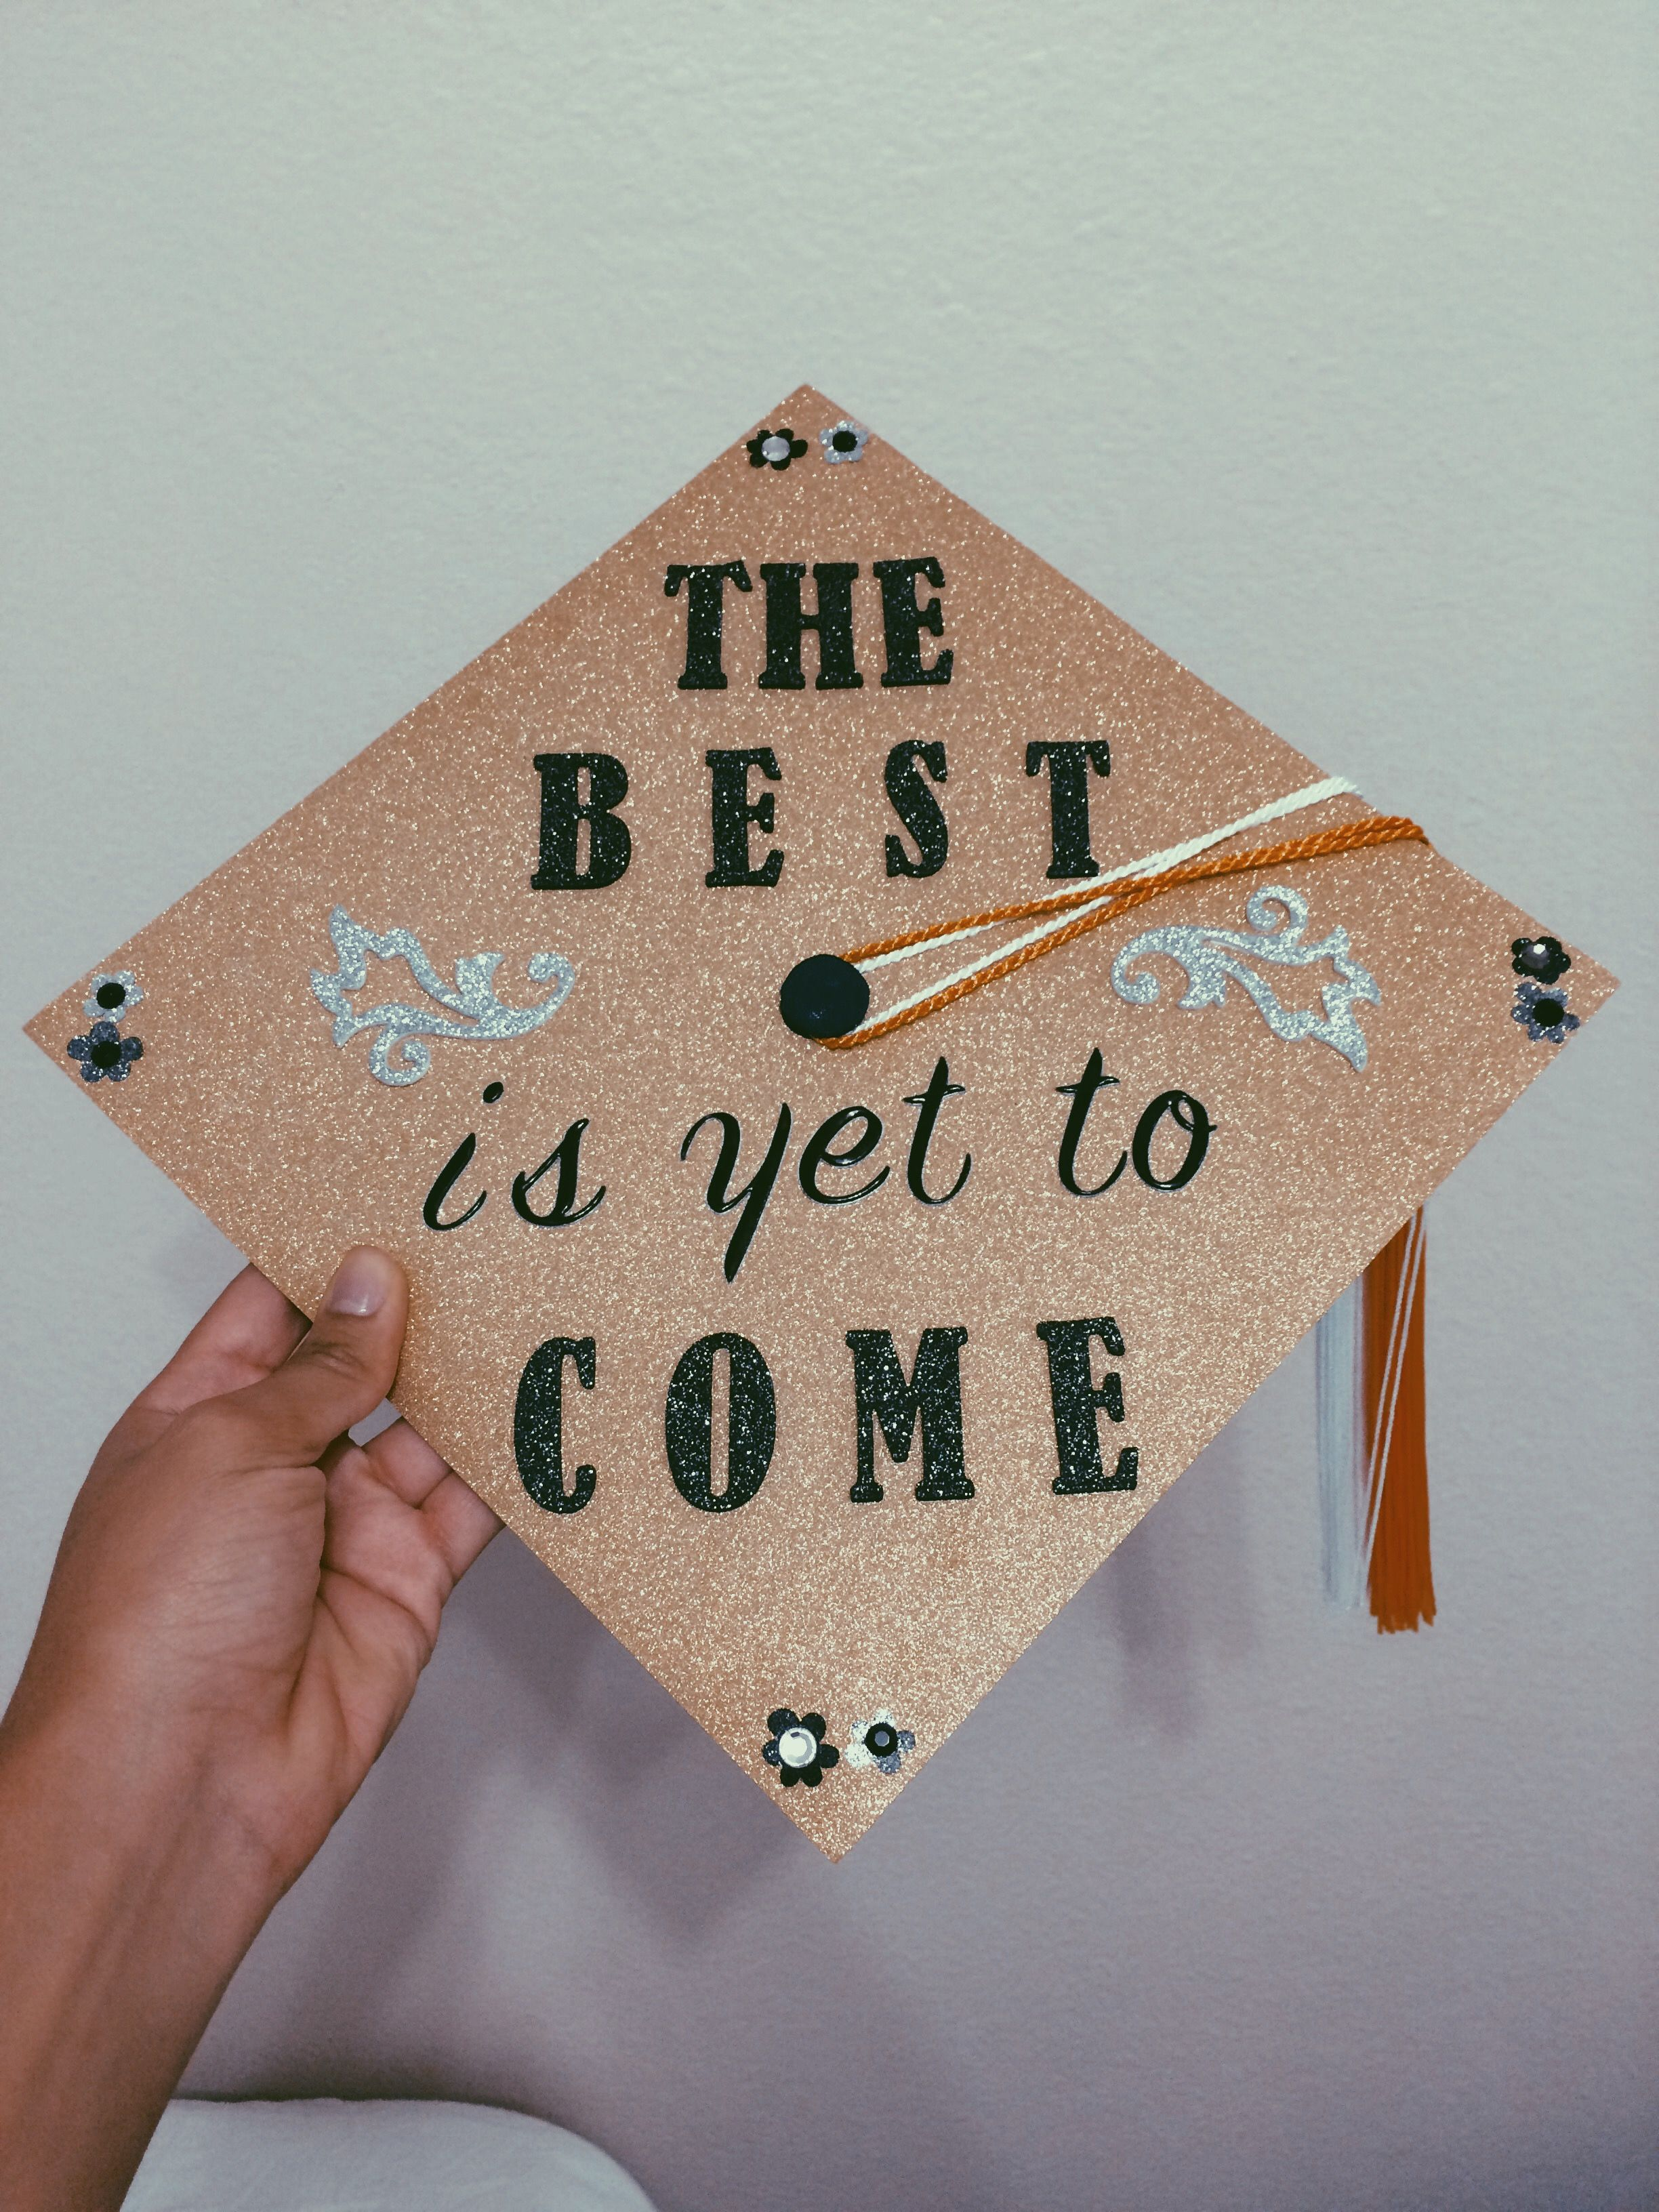 The best is yet to e graduation cap Gold glitter scrapbook paper